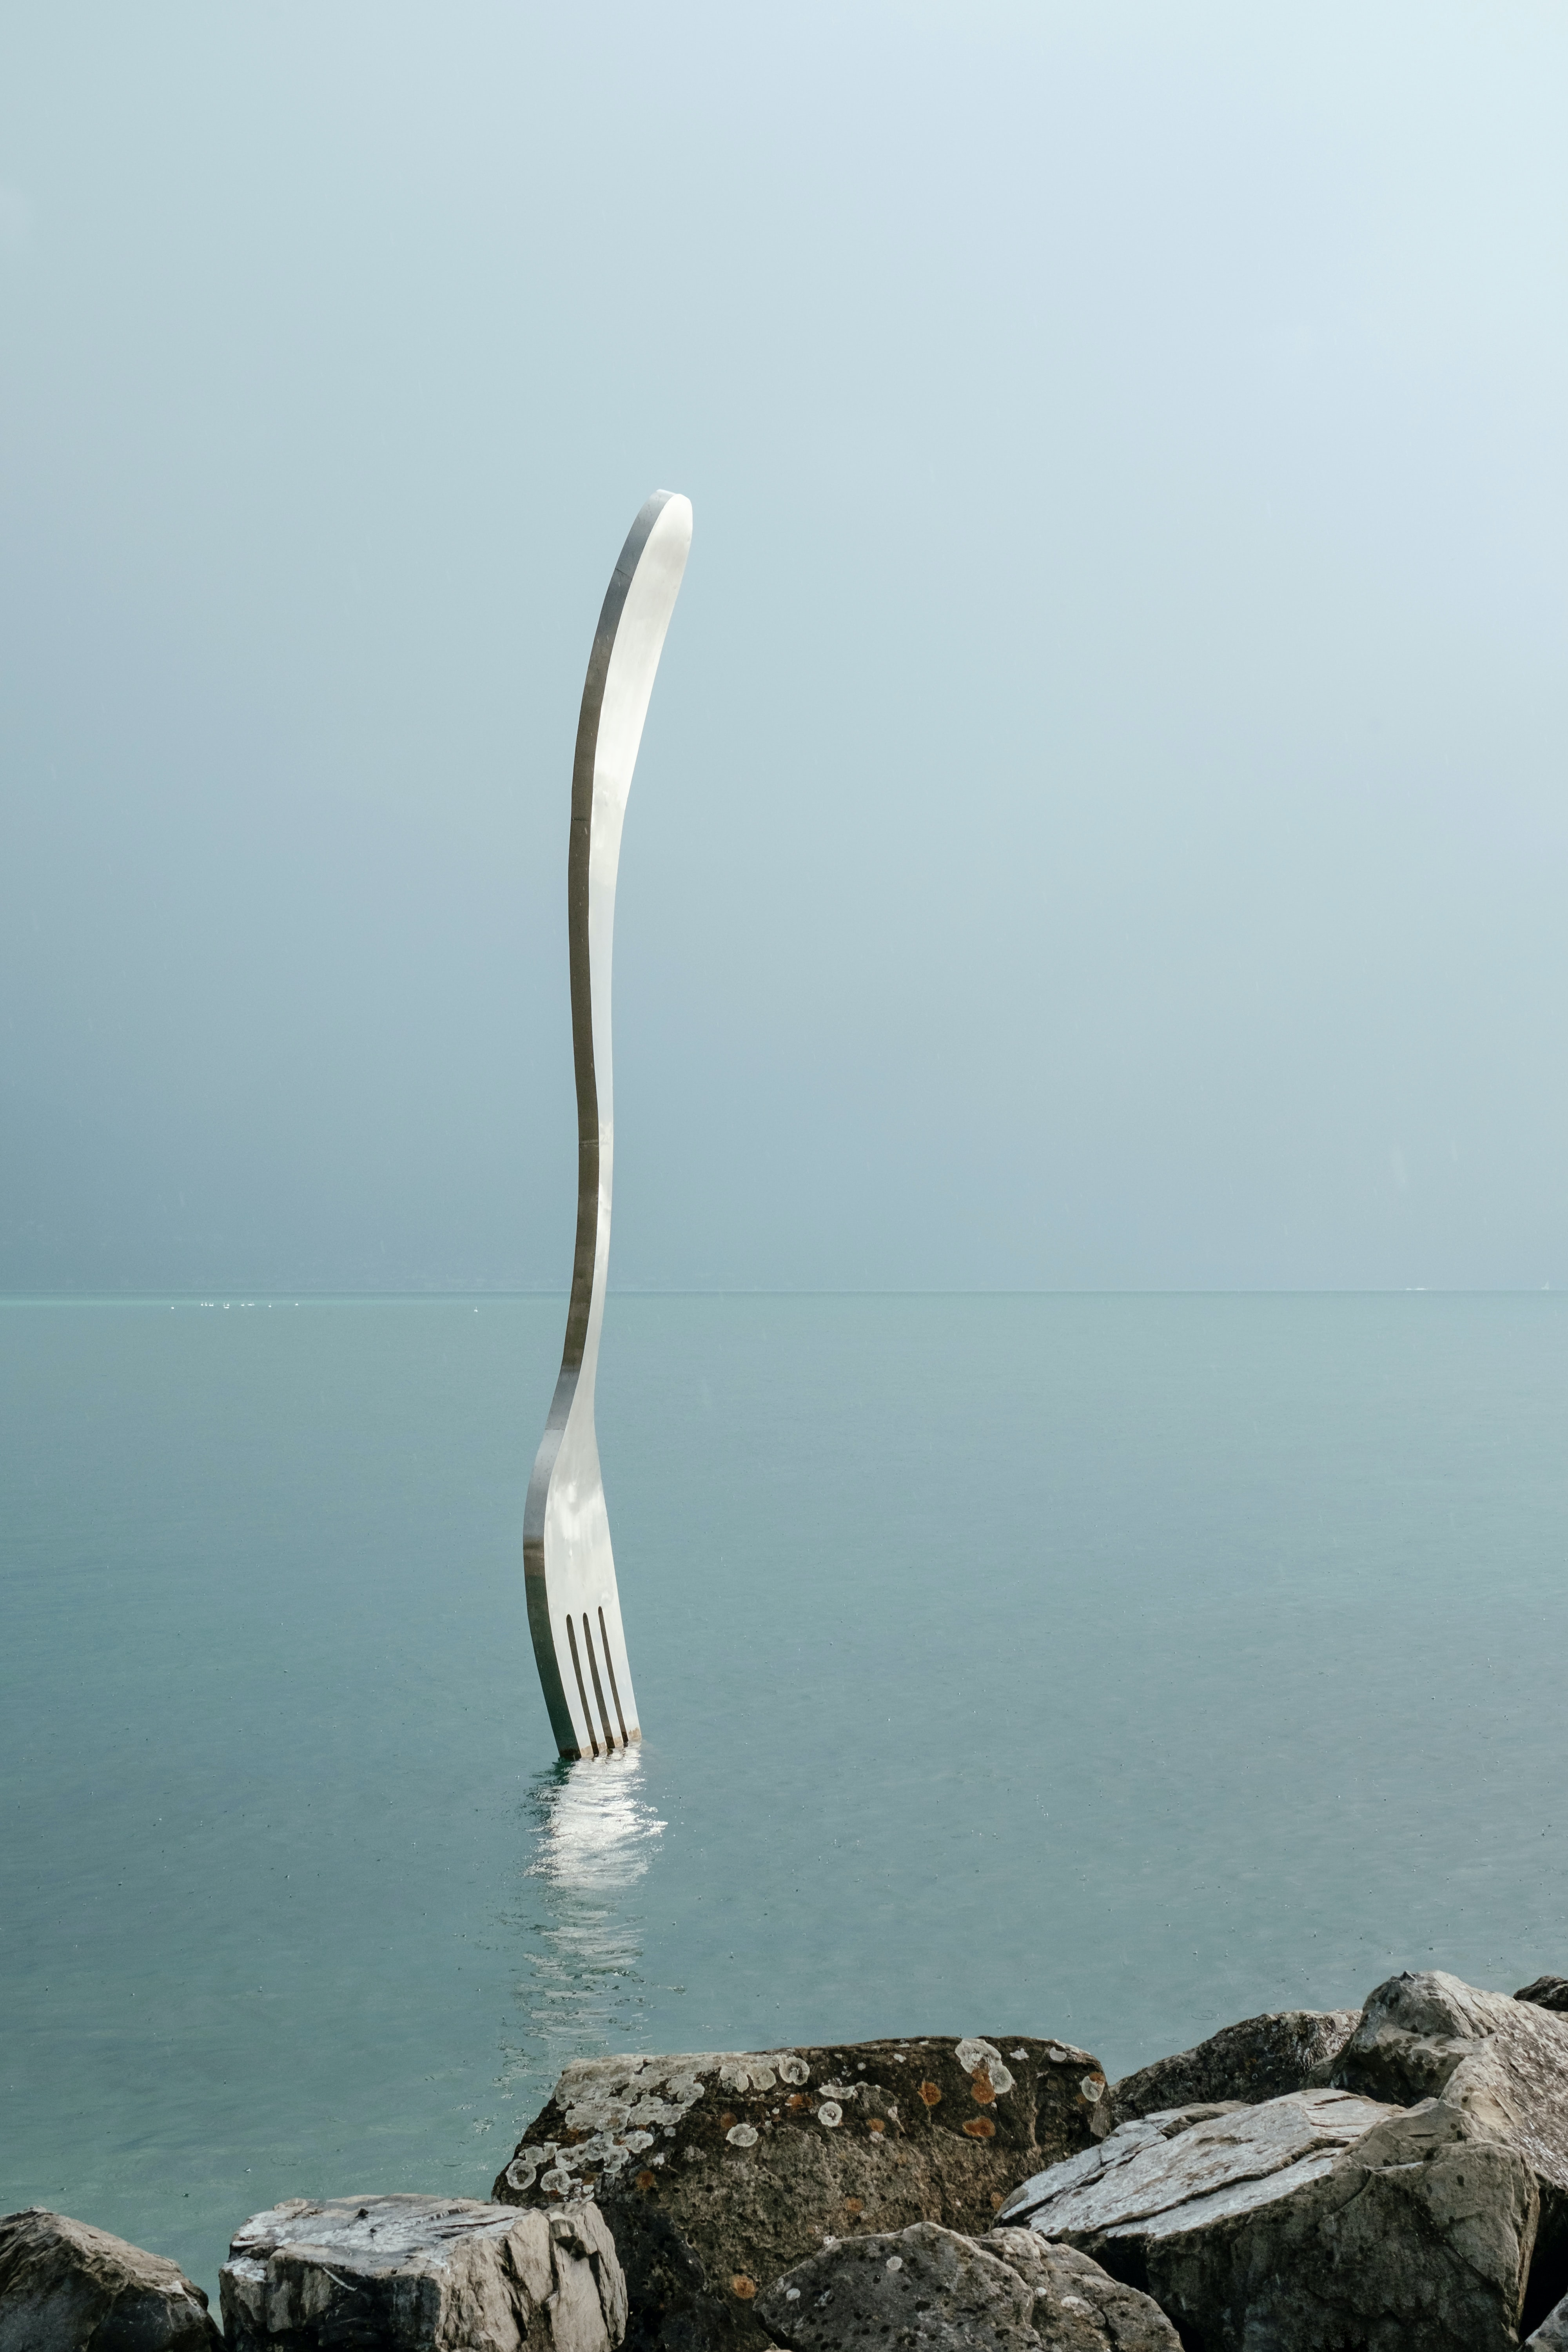 stainless steel fork on water